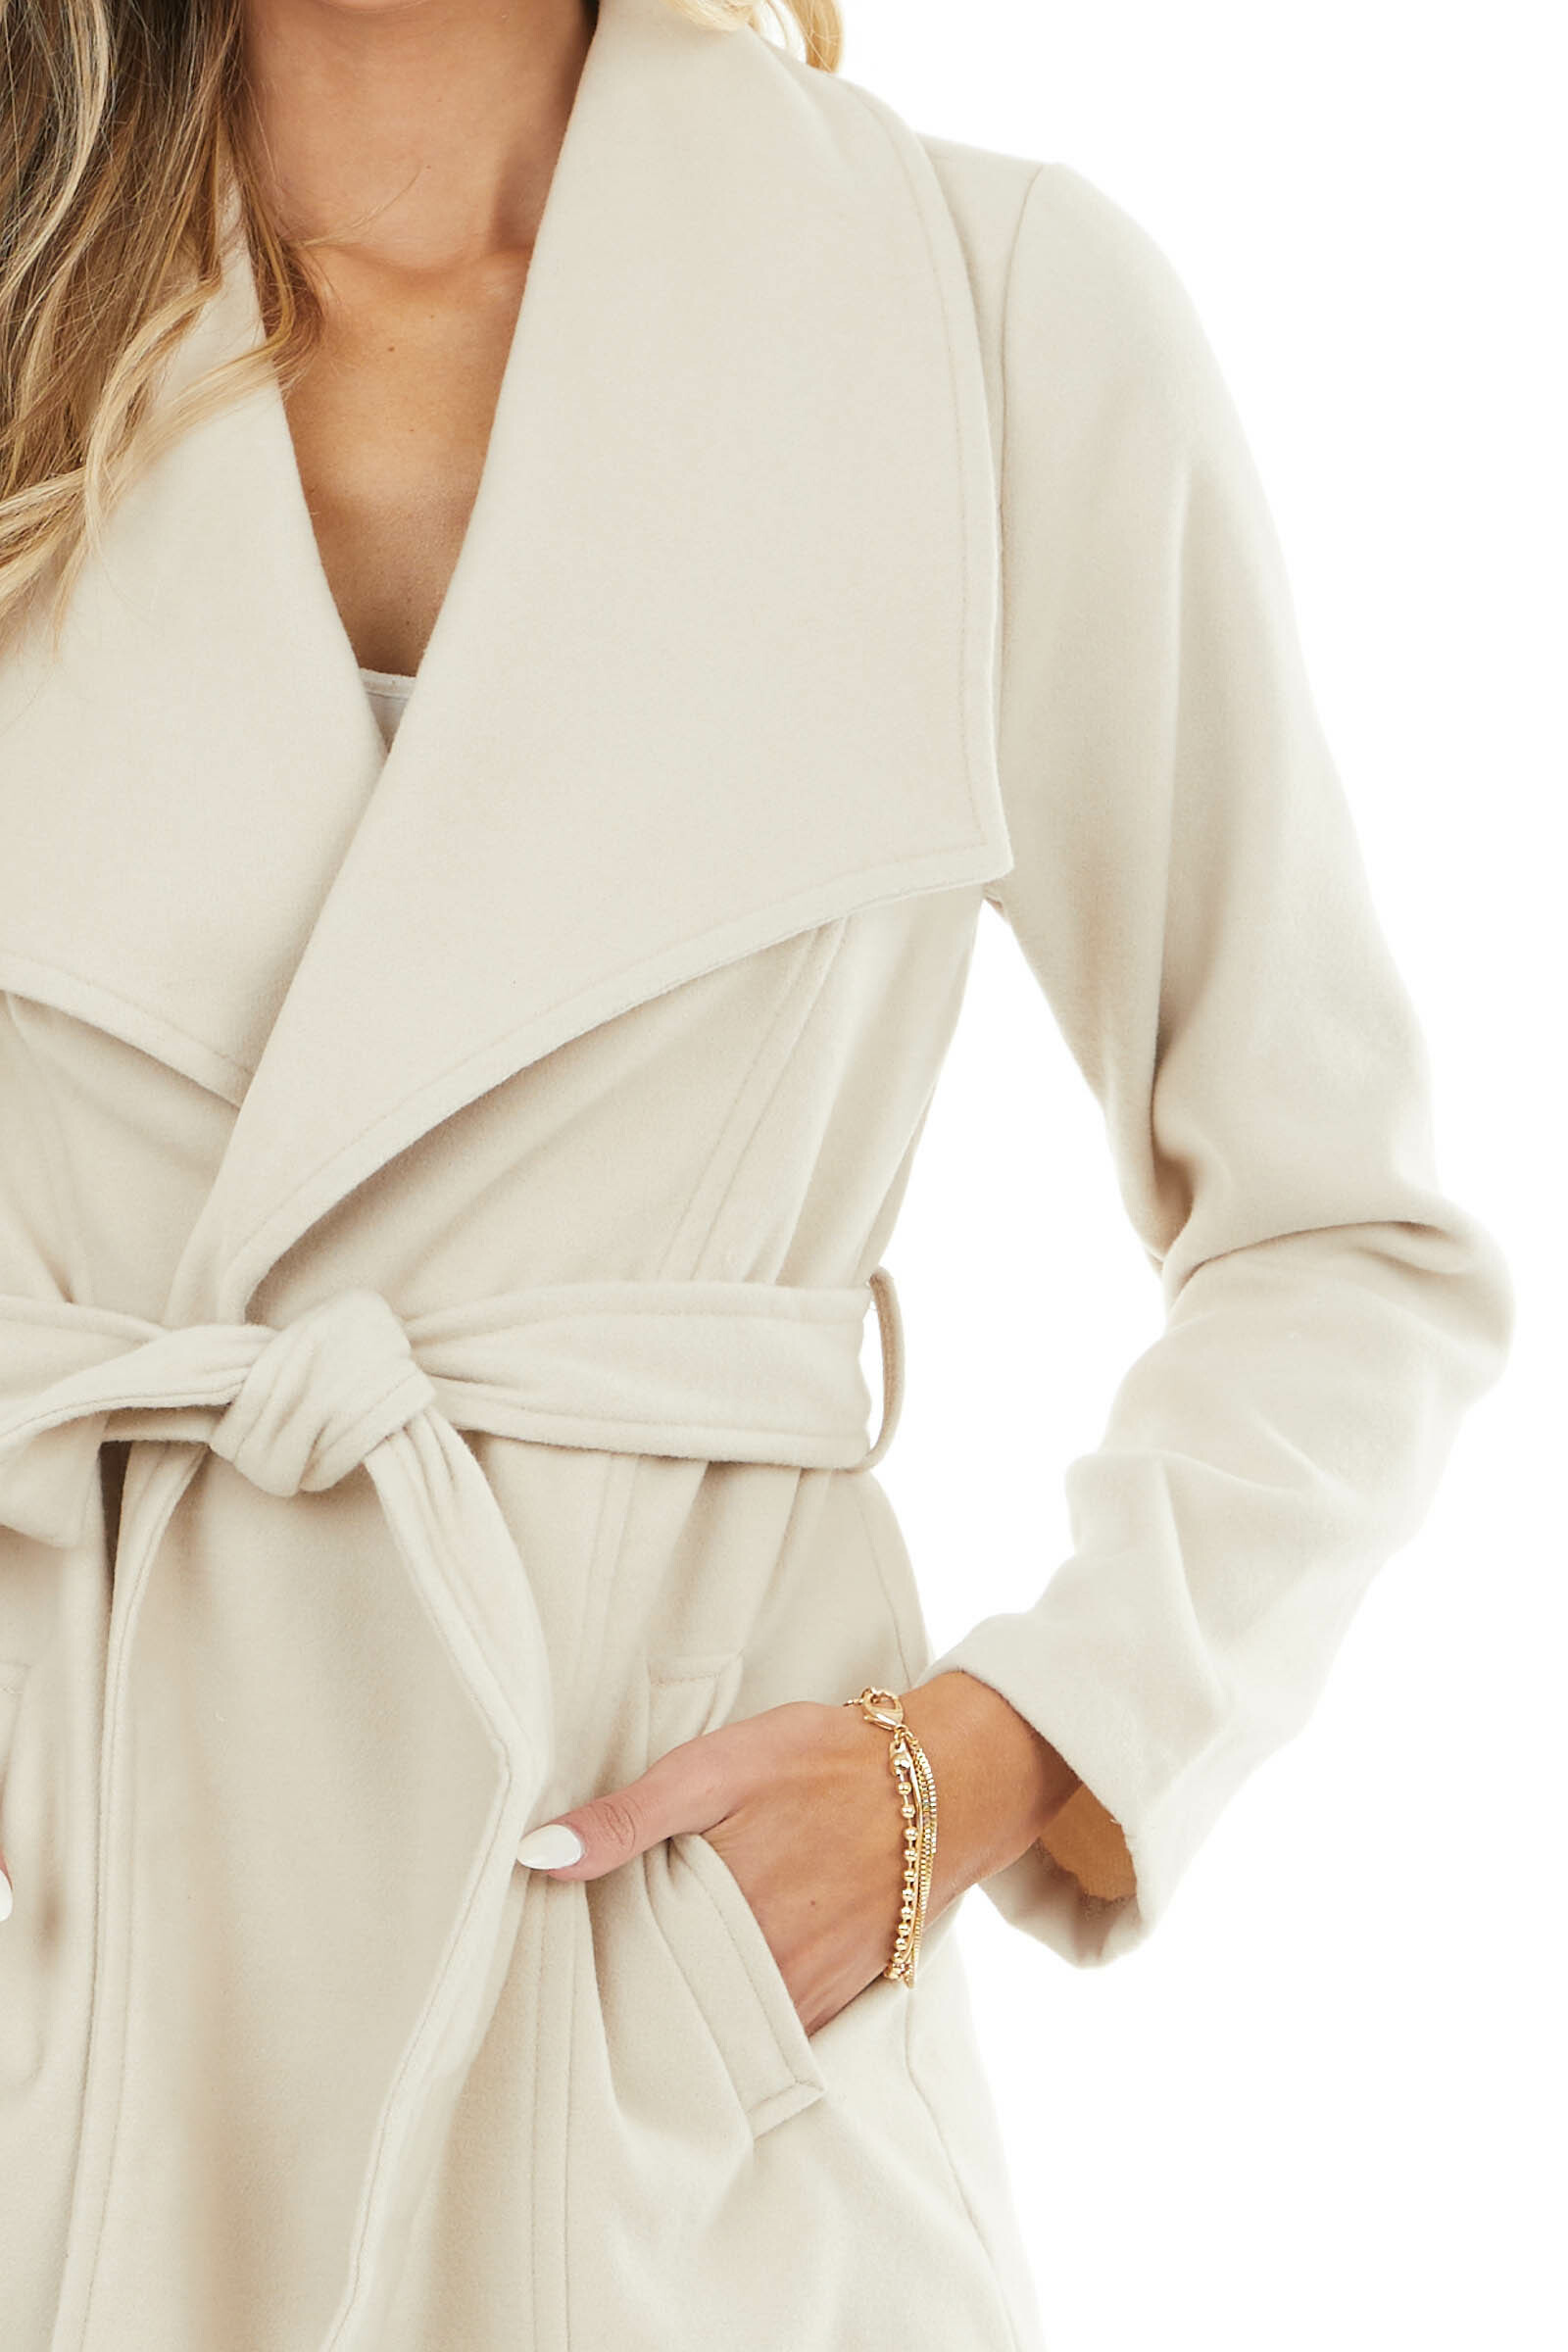 Champagne Open Front Fleece Coat with Pockets and Front Tie